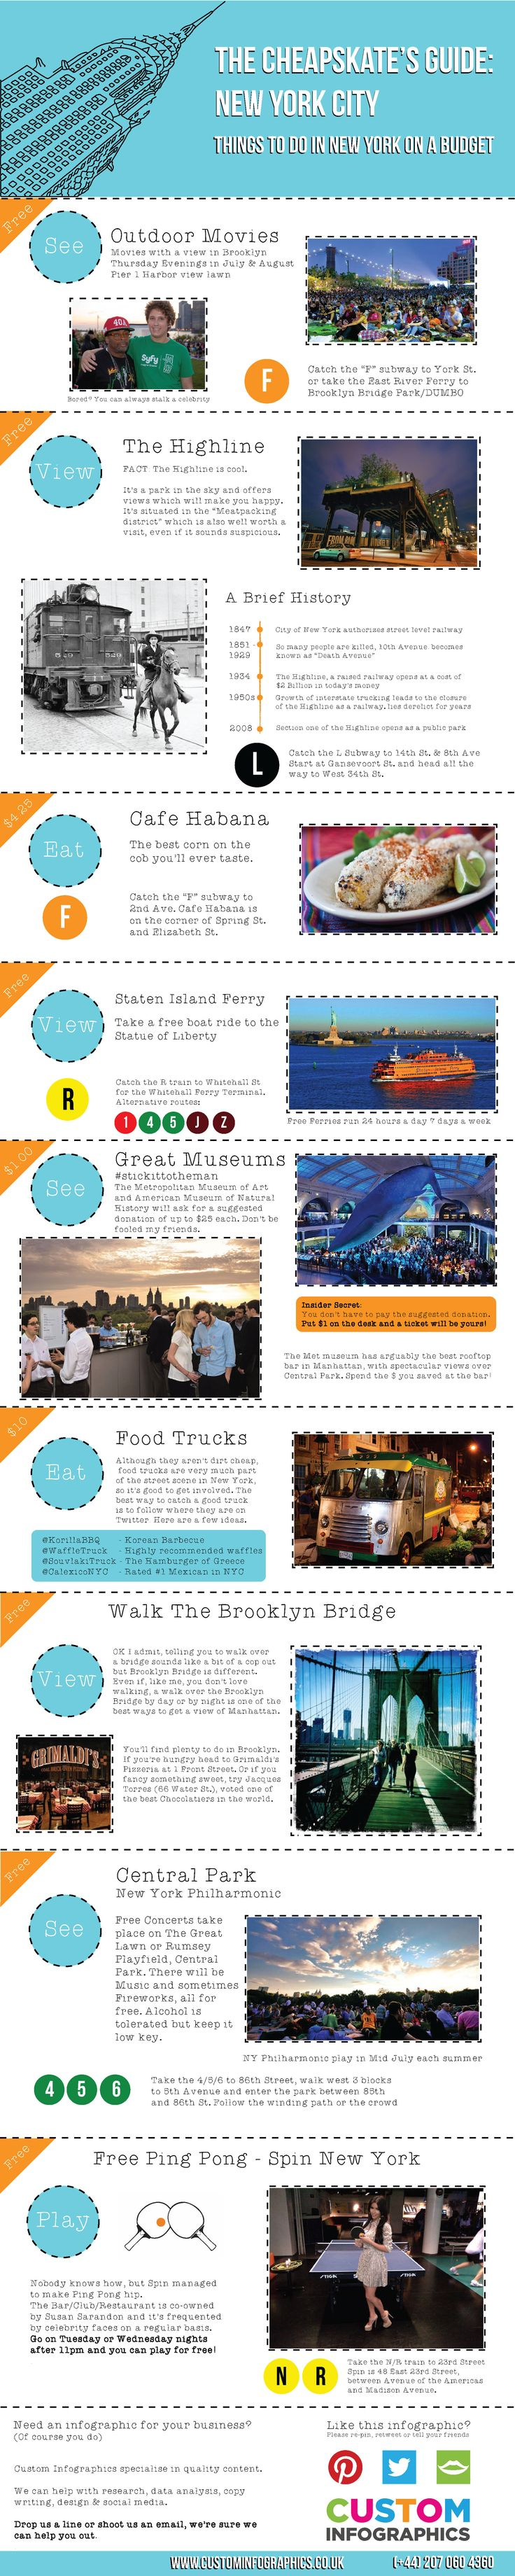 Going To New York City? Check Out Thisgraphic It's An Insiders Guide